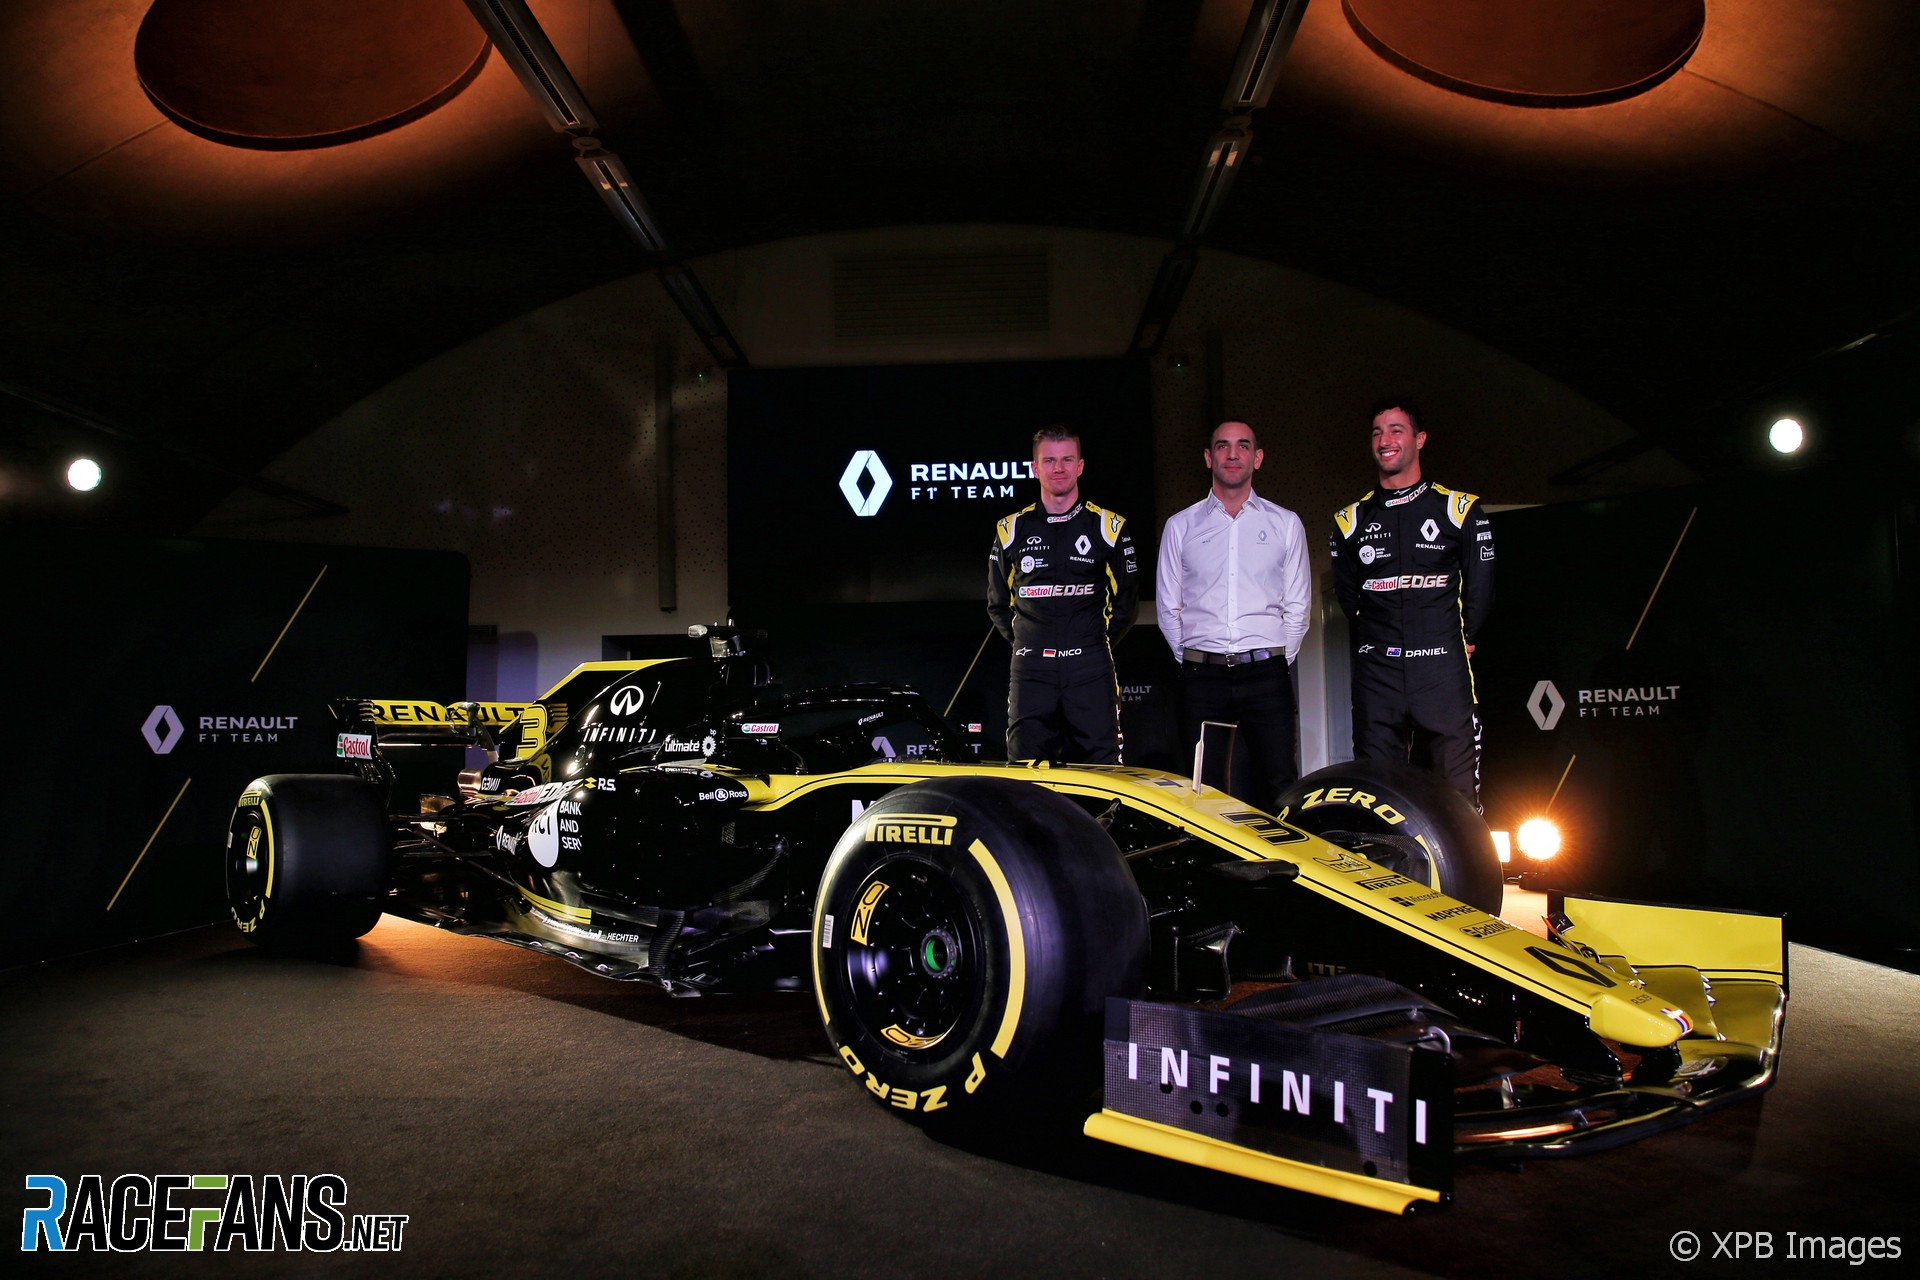 Renault 2019 F1 livery launch